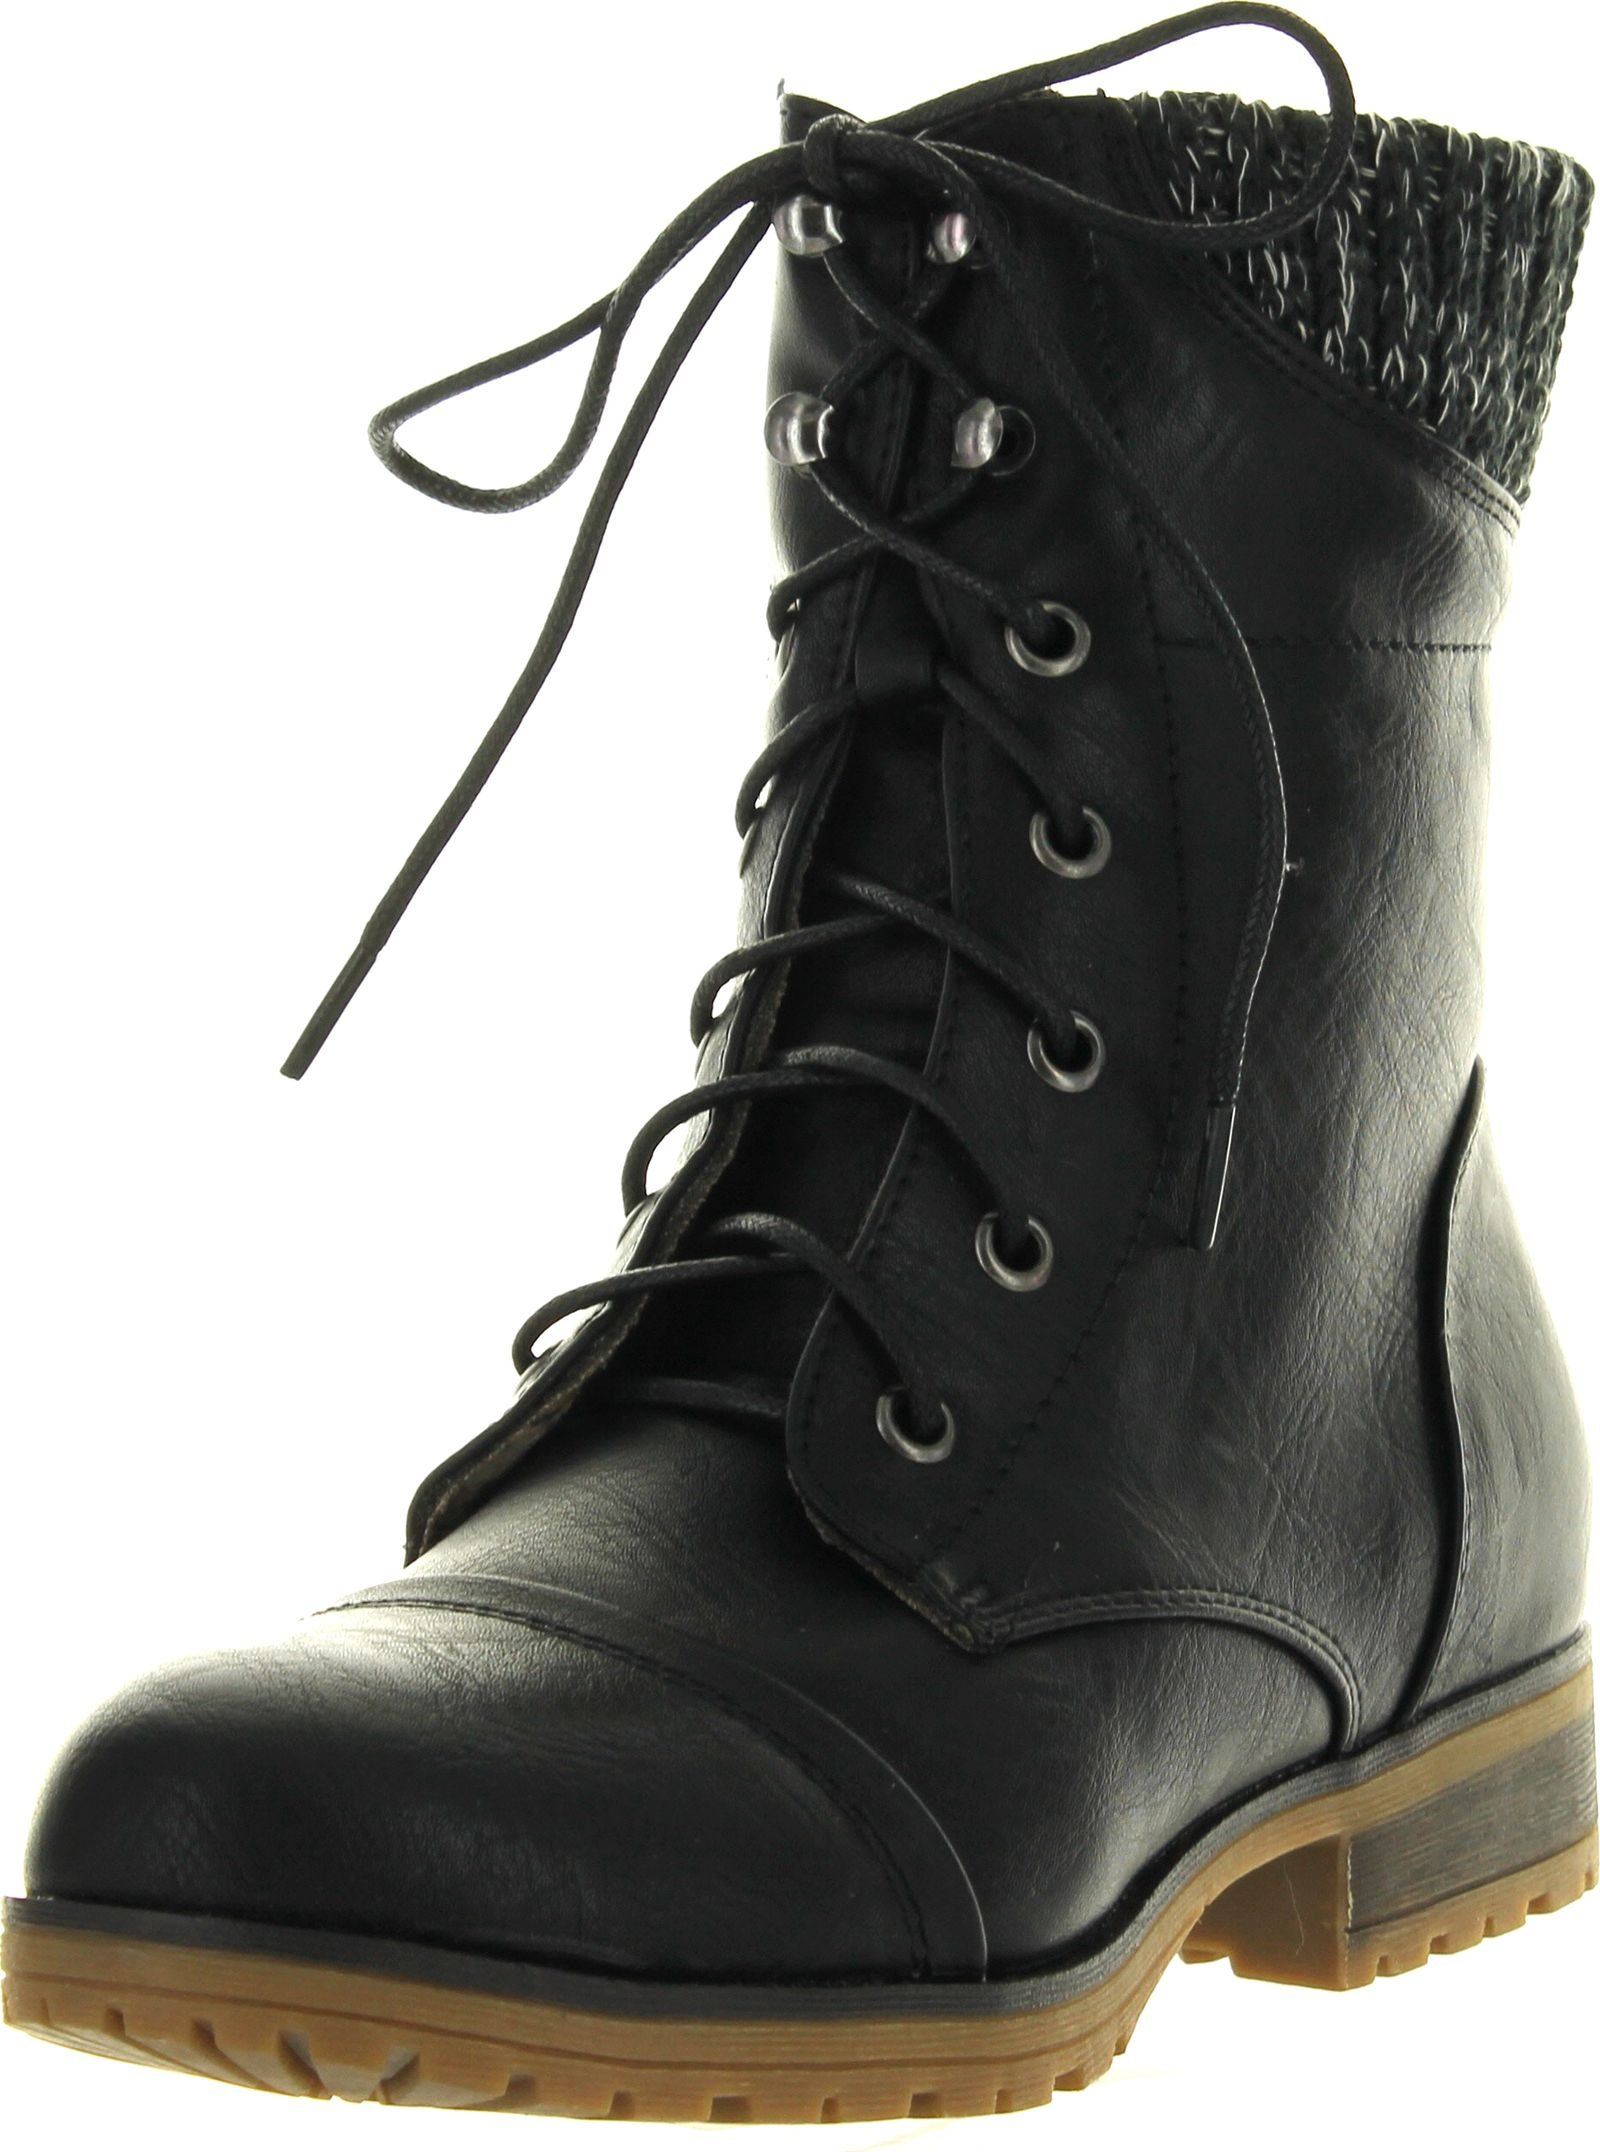 Refresh Womens Wynne-06 Combat Flat Style Lace Up Back Zipper Mid-Calf Bootie,Black,8